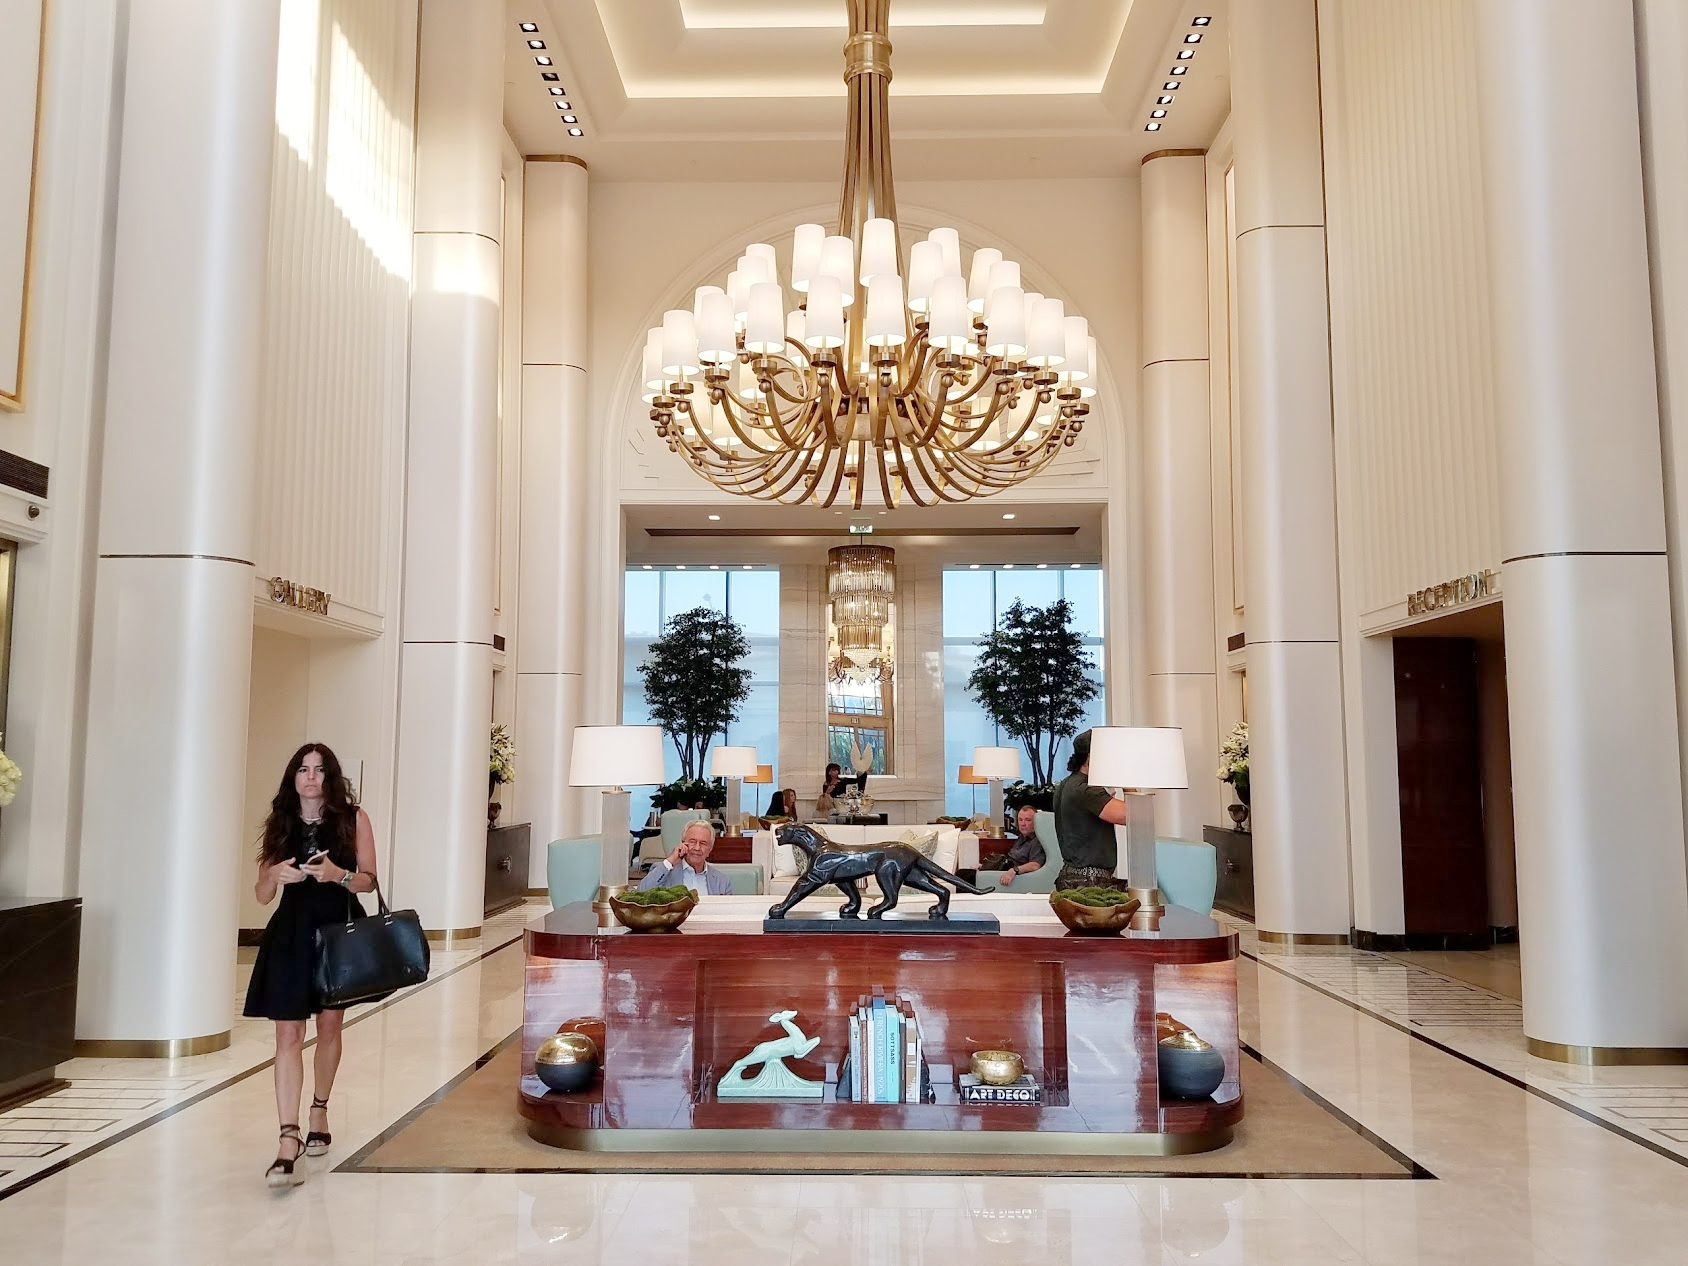 Waldorf Astoria Beverly Hills. You know you want this. Stephanie (pictured) is living the good life.